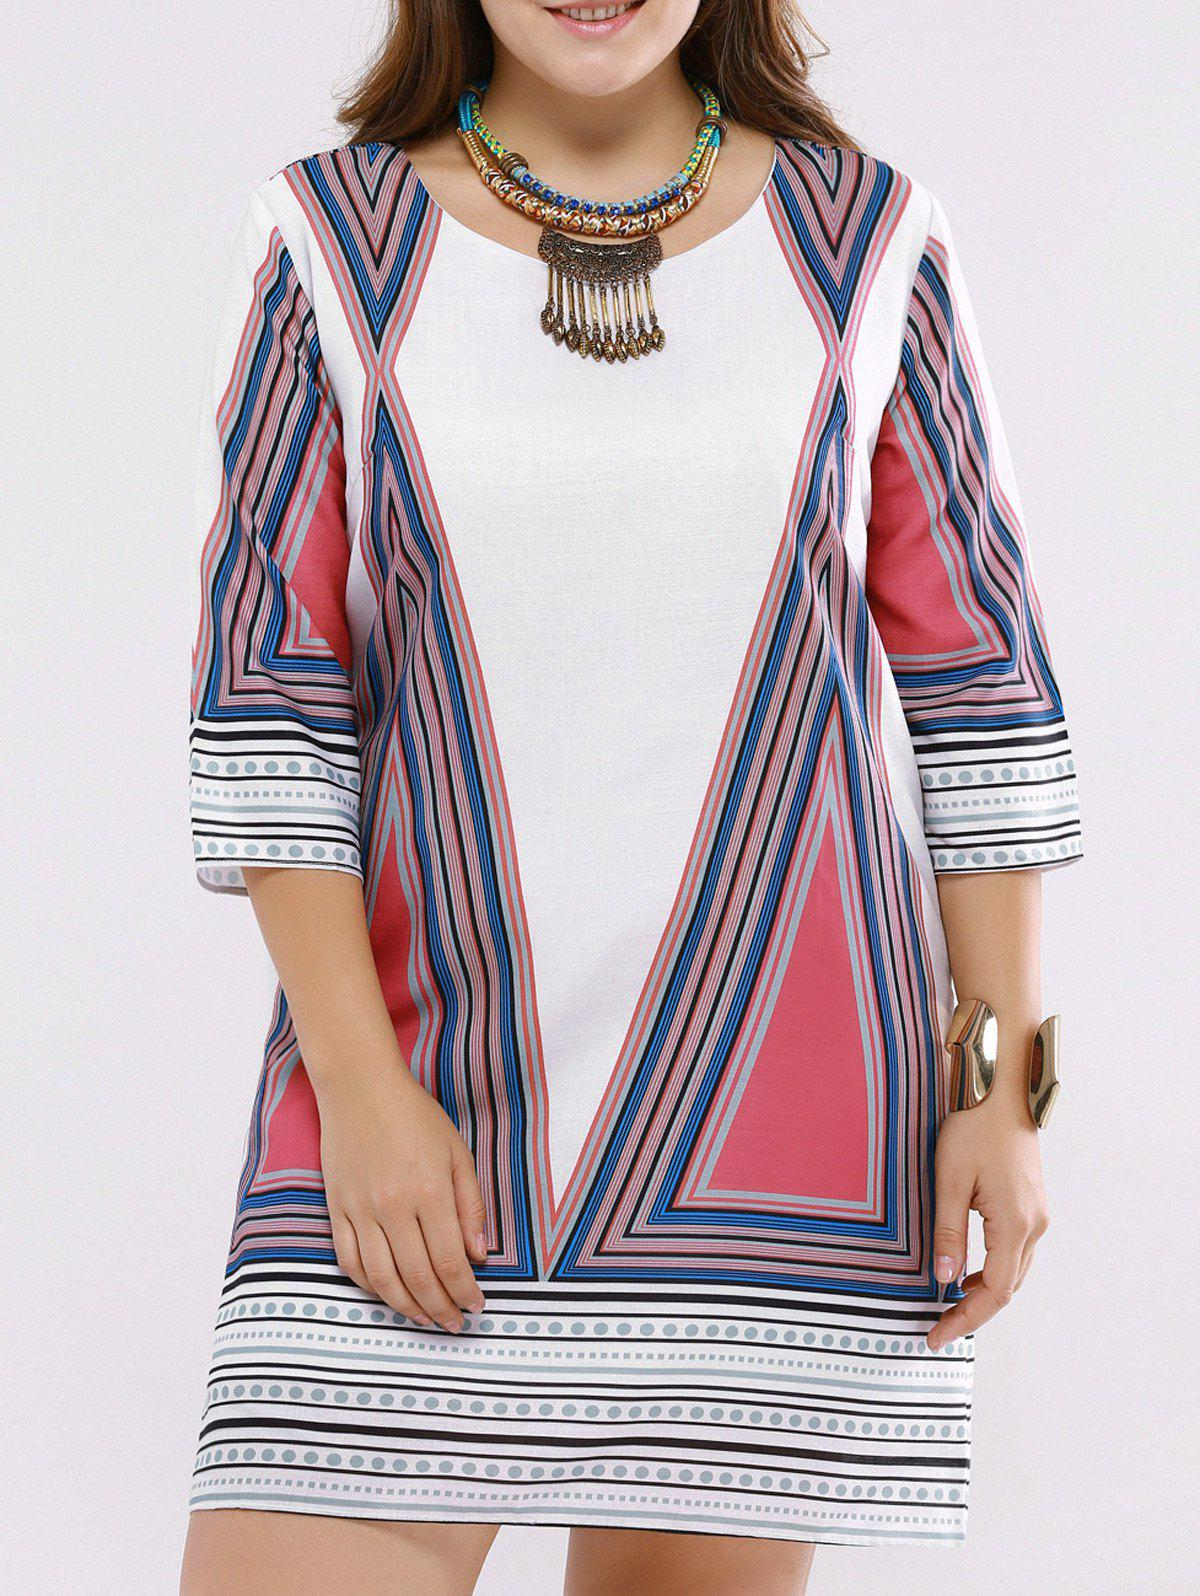 Refreshing Geometric Print Scoop Neck Plus Size Dress For Women - COLORMIX 5XL